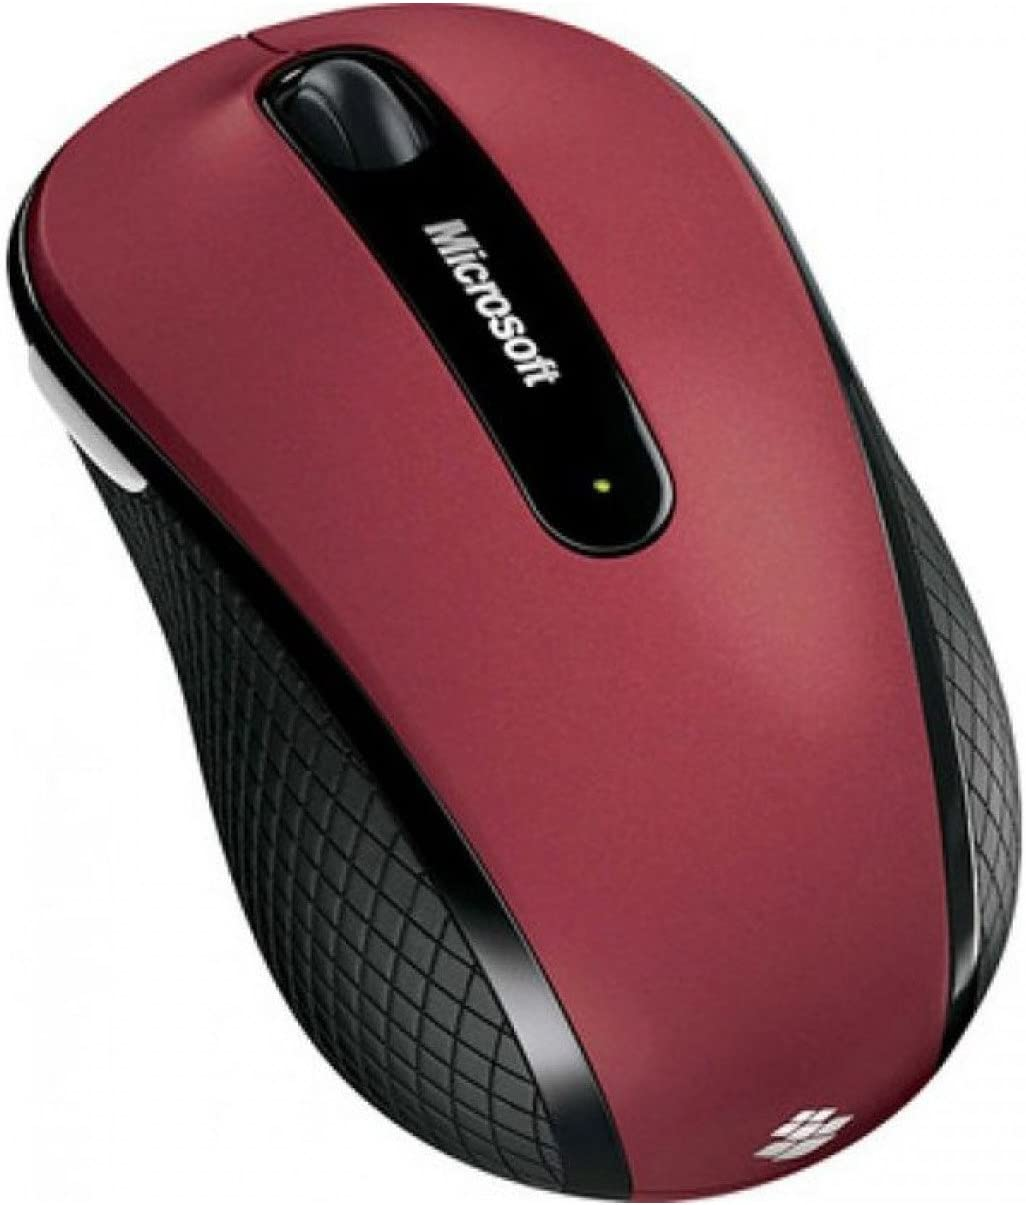 Microsoft D5D-00038 Wireless Mobile Mouse 4000; Ruby Pink Red Top with Black Sides